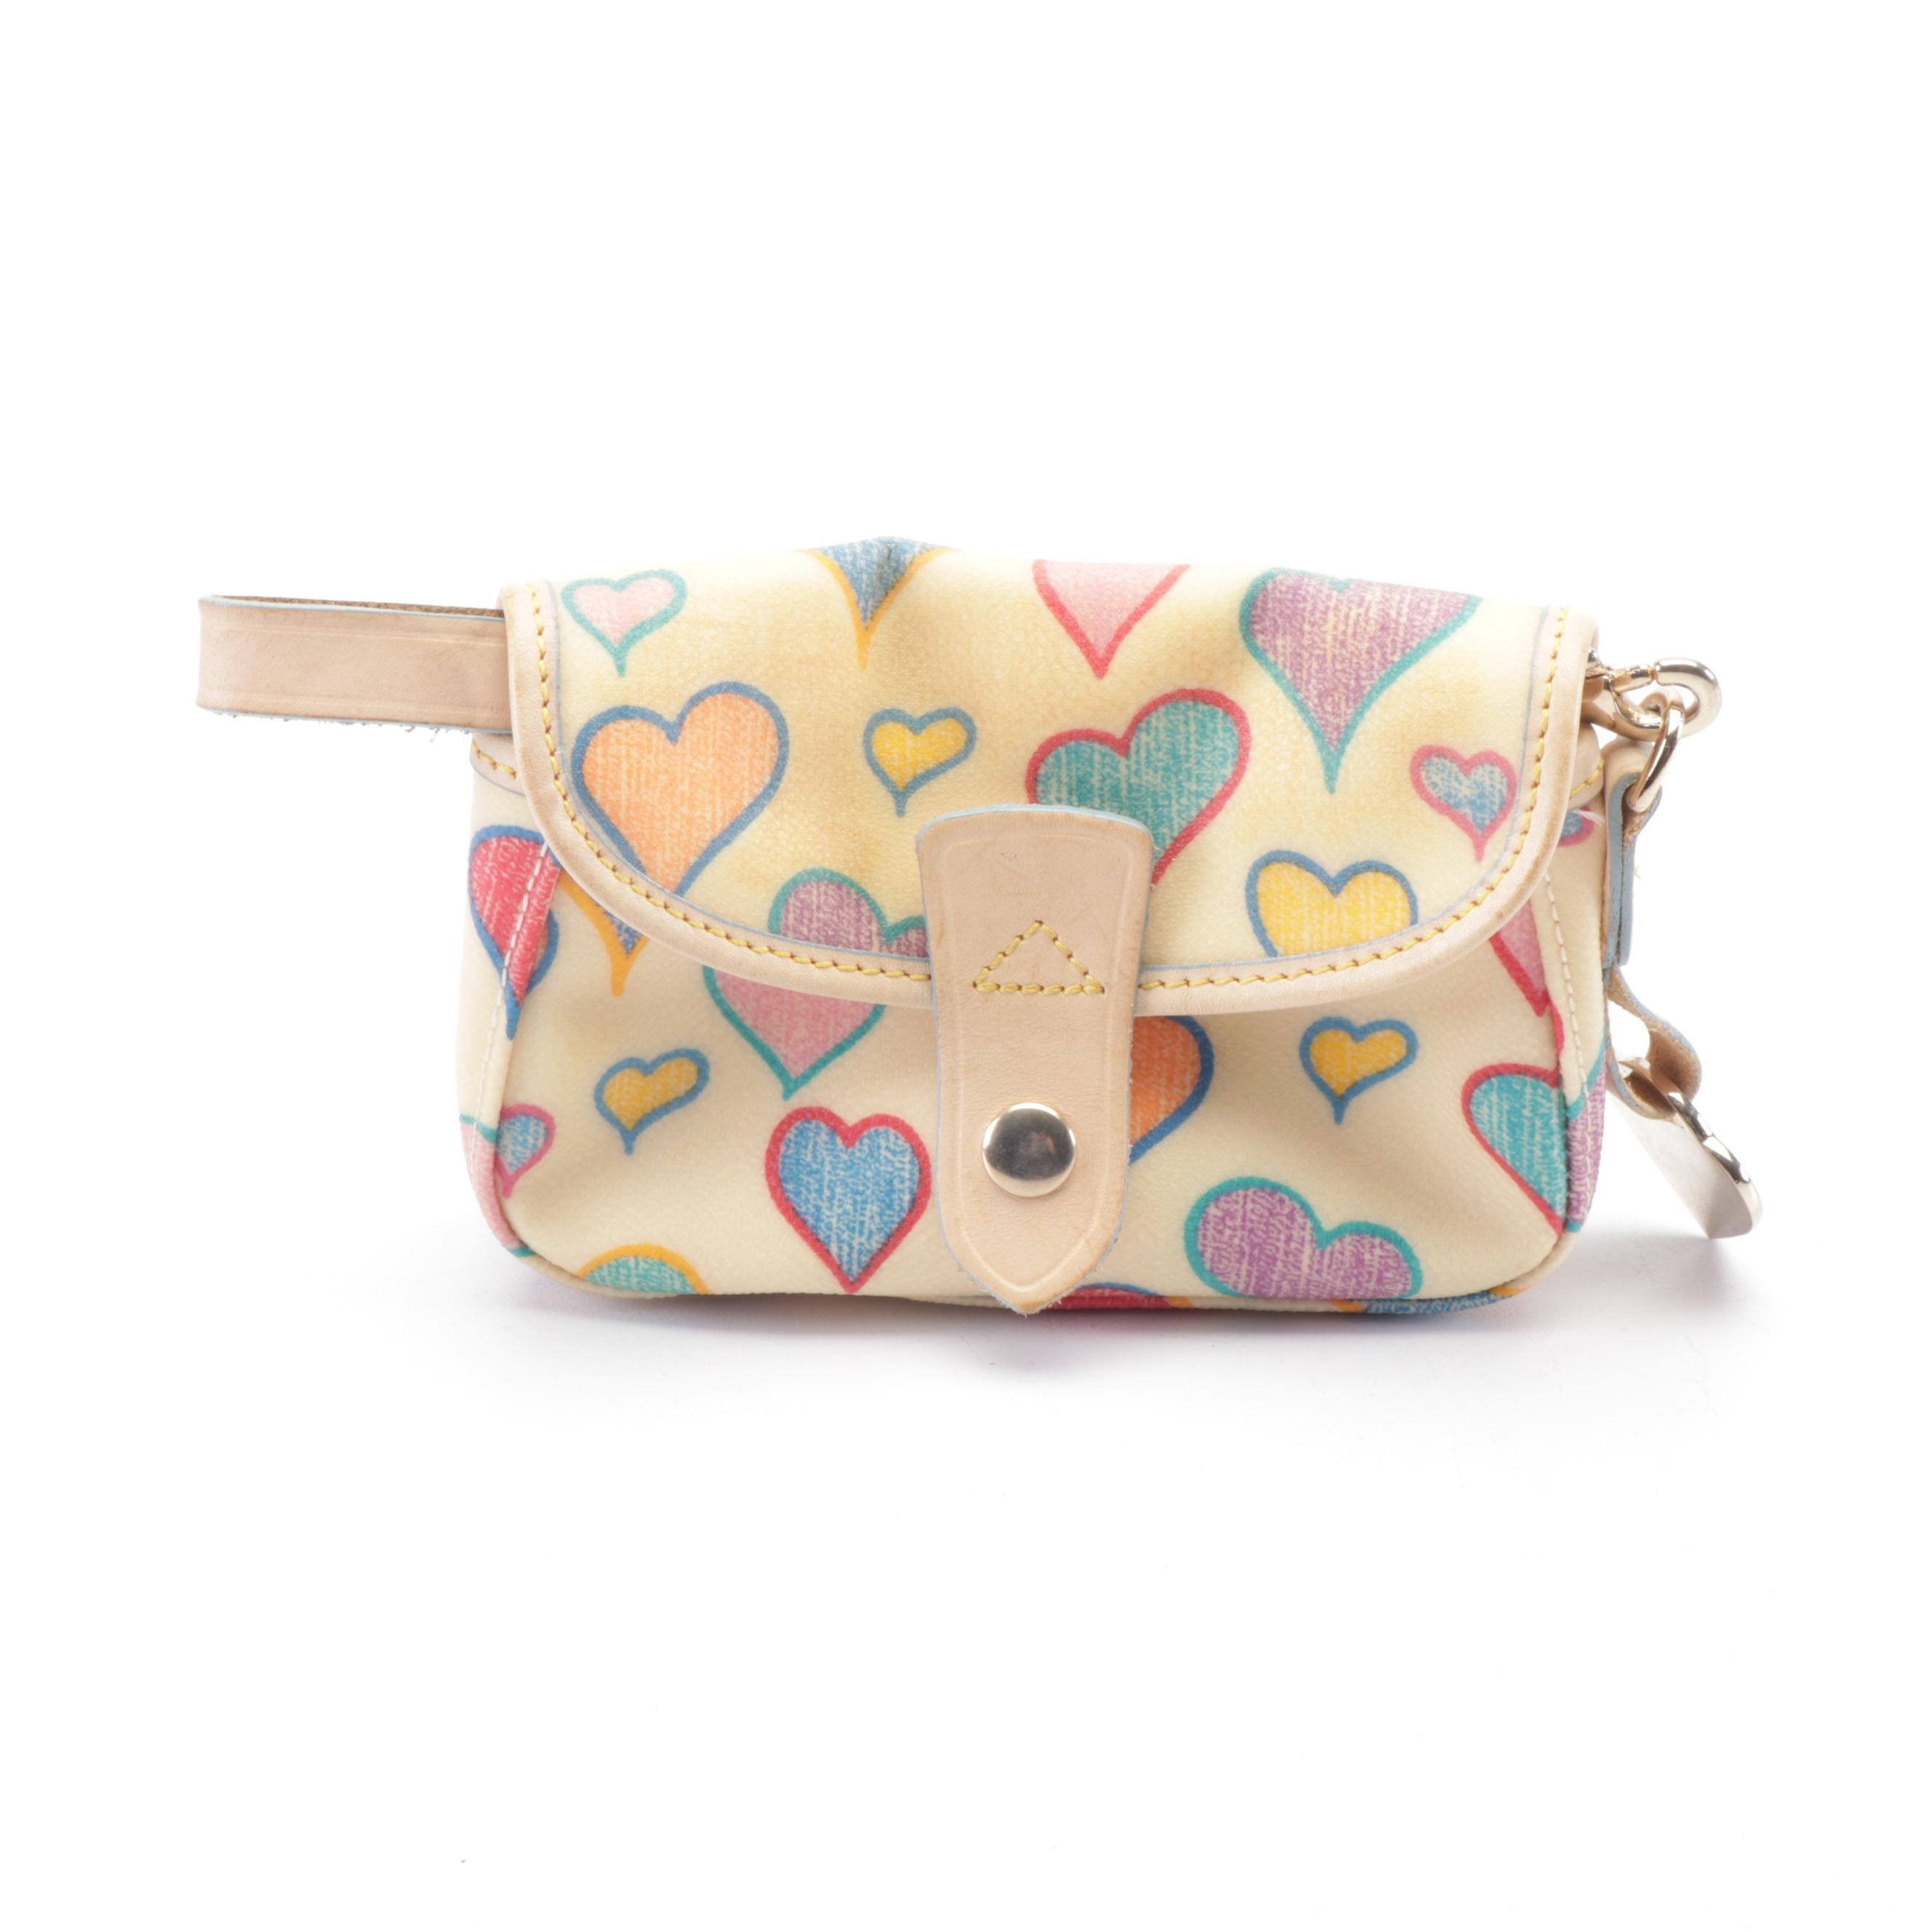 Dooney & Bourke Heart Print Coated Canvas Wristlet with Leather Trim